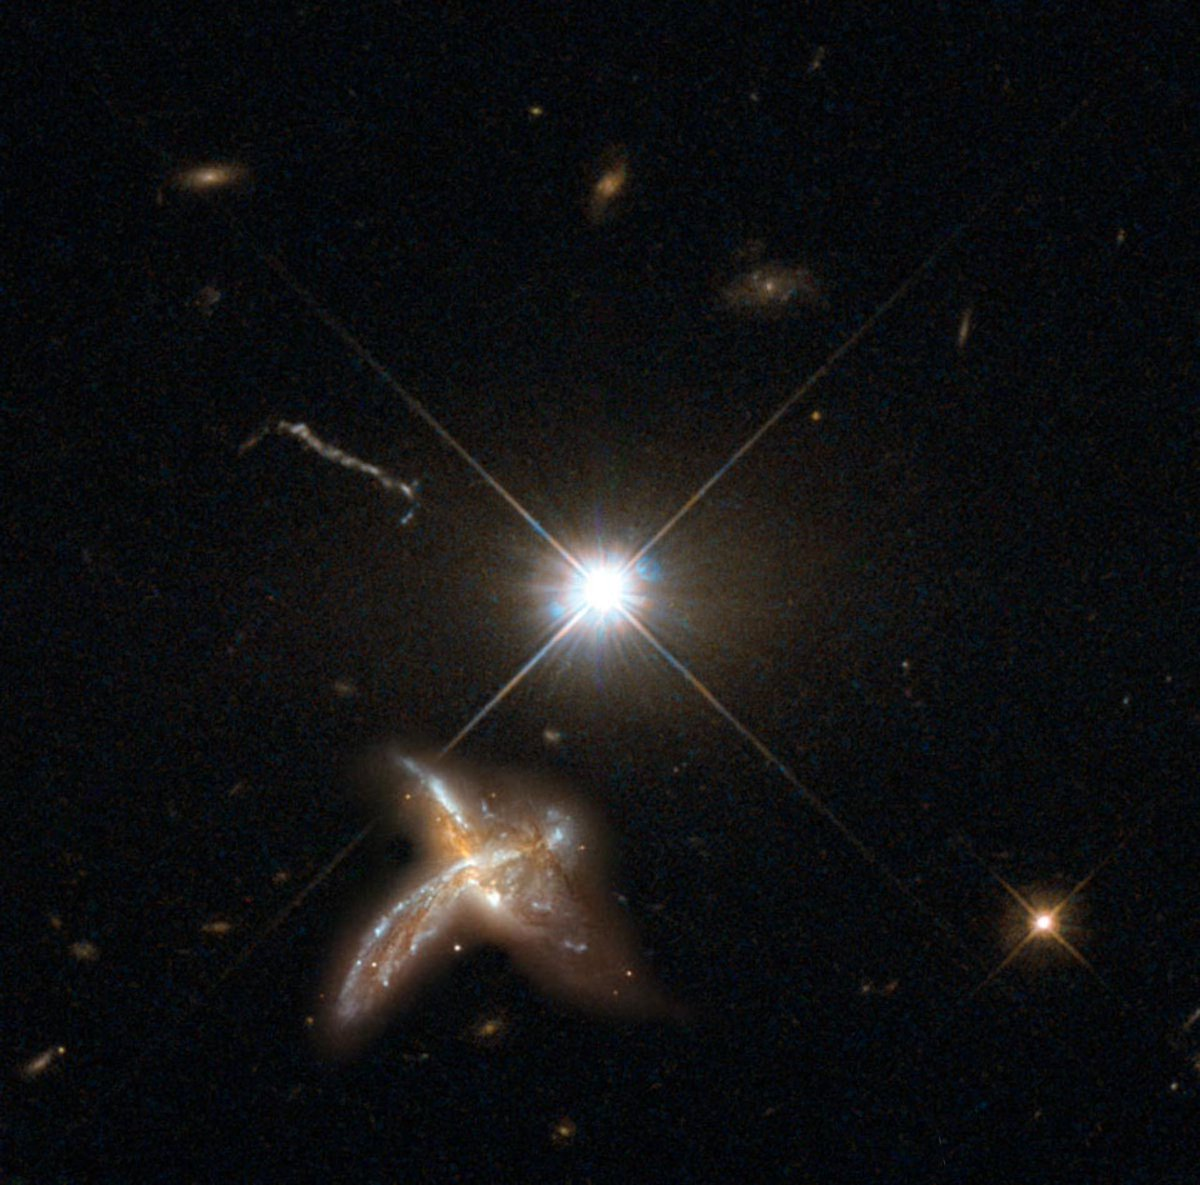 Astronomers Discover New Kind of Galaxy  http://www. sci-news.com/astronomy/rapi dly-star-forming-galaxies-early-universe-04893.html &nbsp; …  #astronomy #space #science #ALMA <br>http://pic.twitter.com/obF1xgP3H7